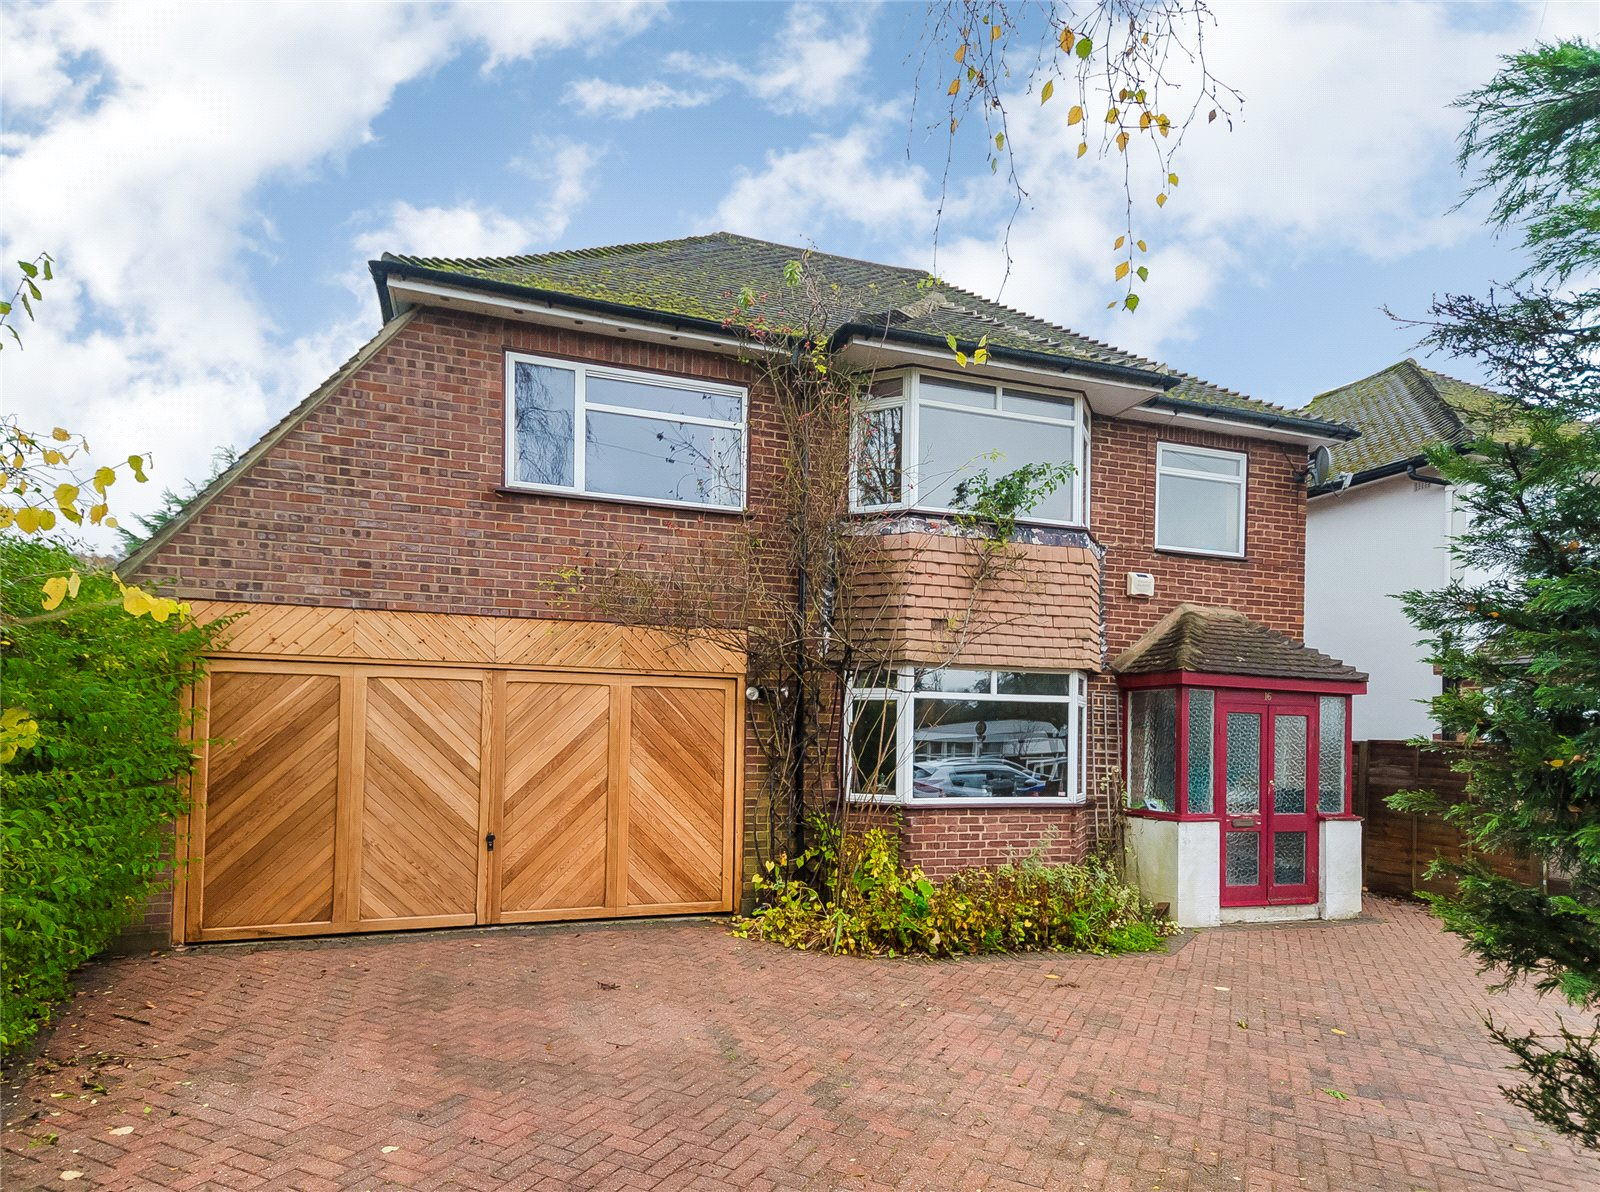 Single Family Home for Sale at Lower Road, Denham, Uxbridge, Middlesex, UB9 Middlesex, England